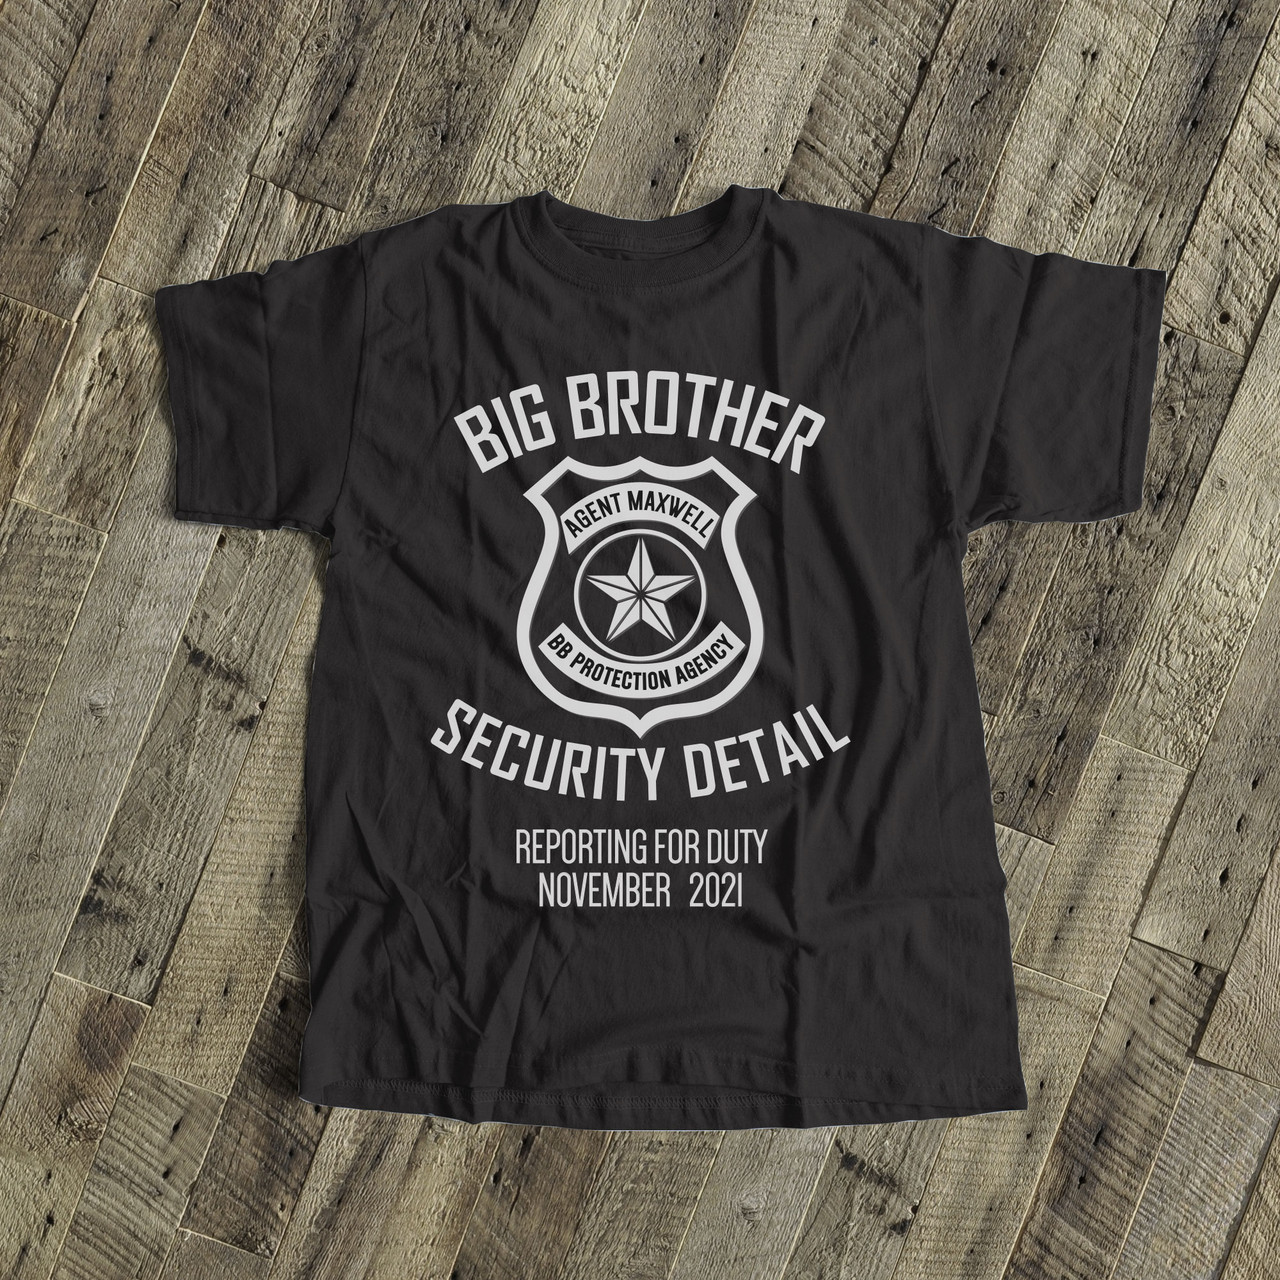 Friends T Big Brother Announcement Shirt The One Where T Shirt Brother Tshirt